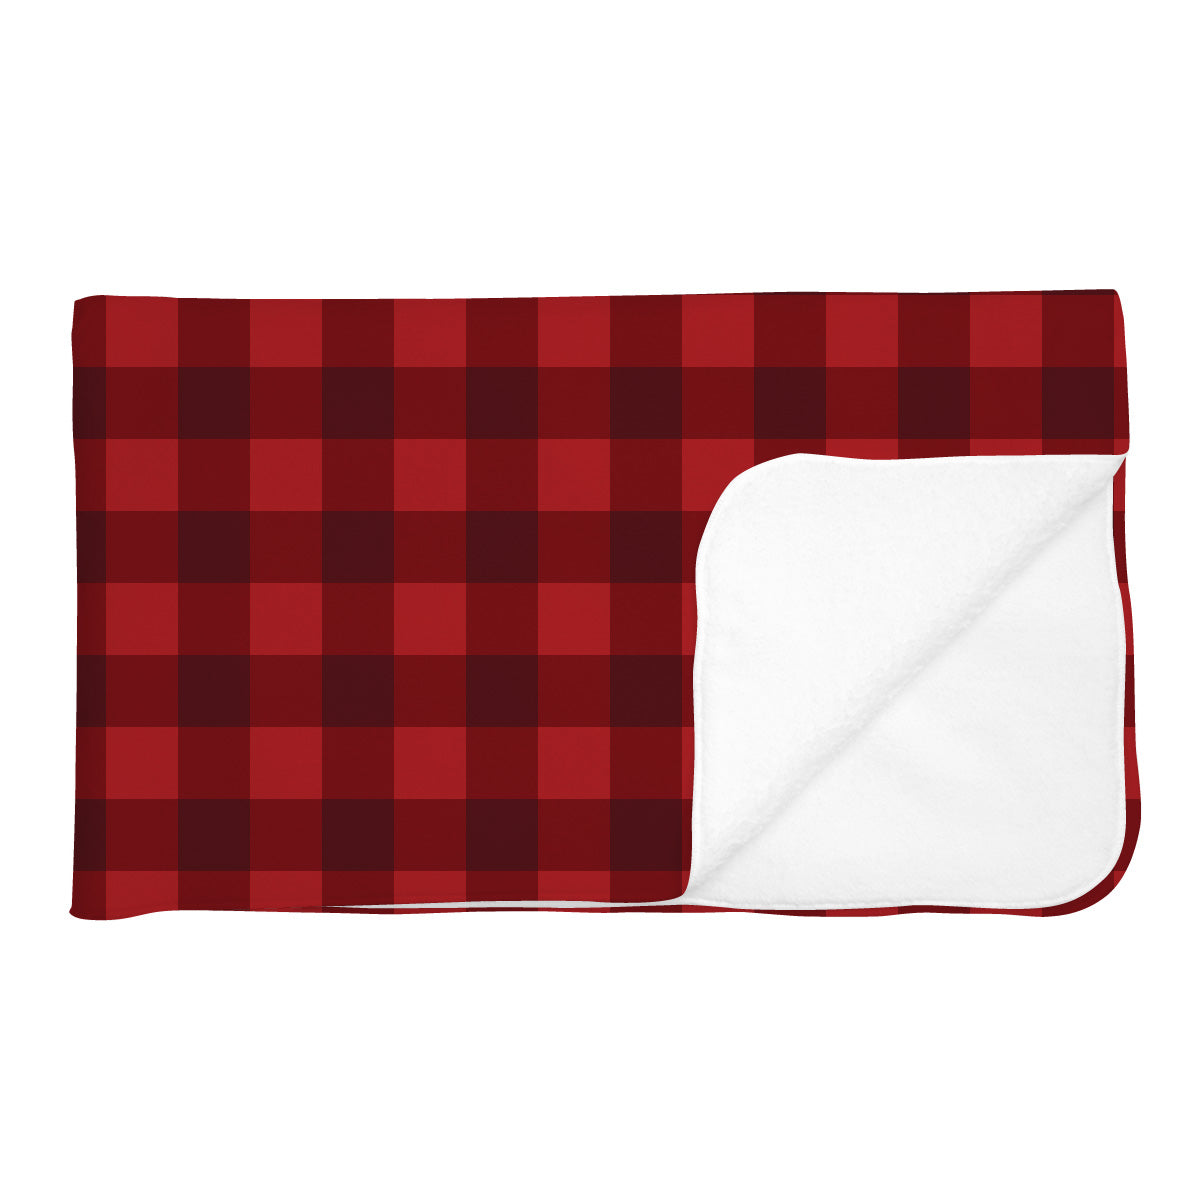 Ryan's Check | Adult Size Blanket